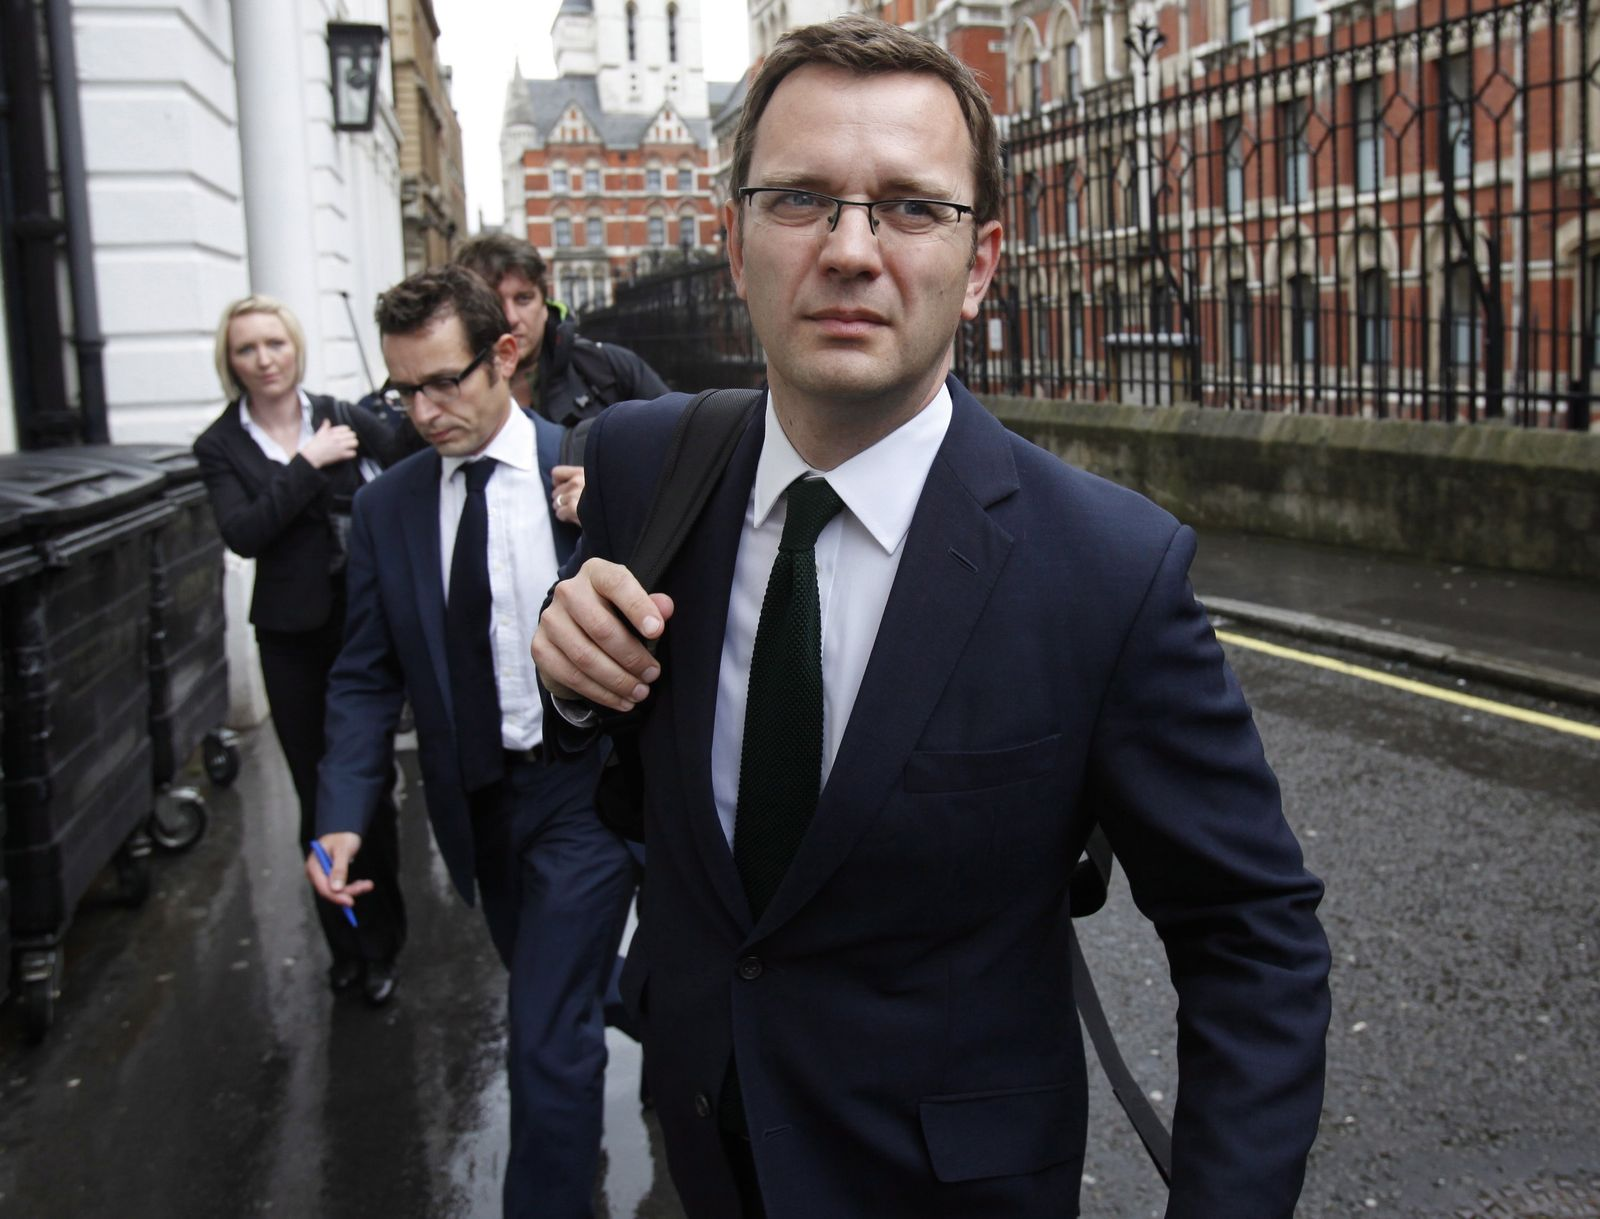 Andy Coulson News of the World